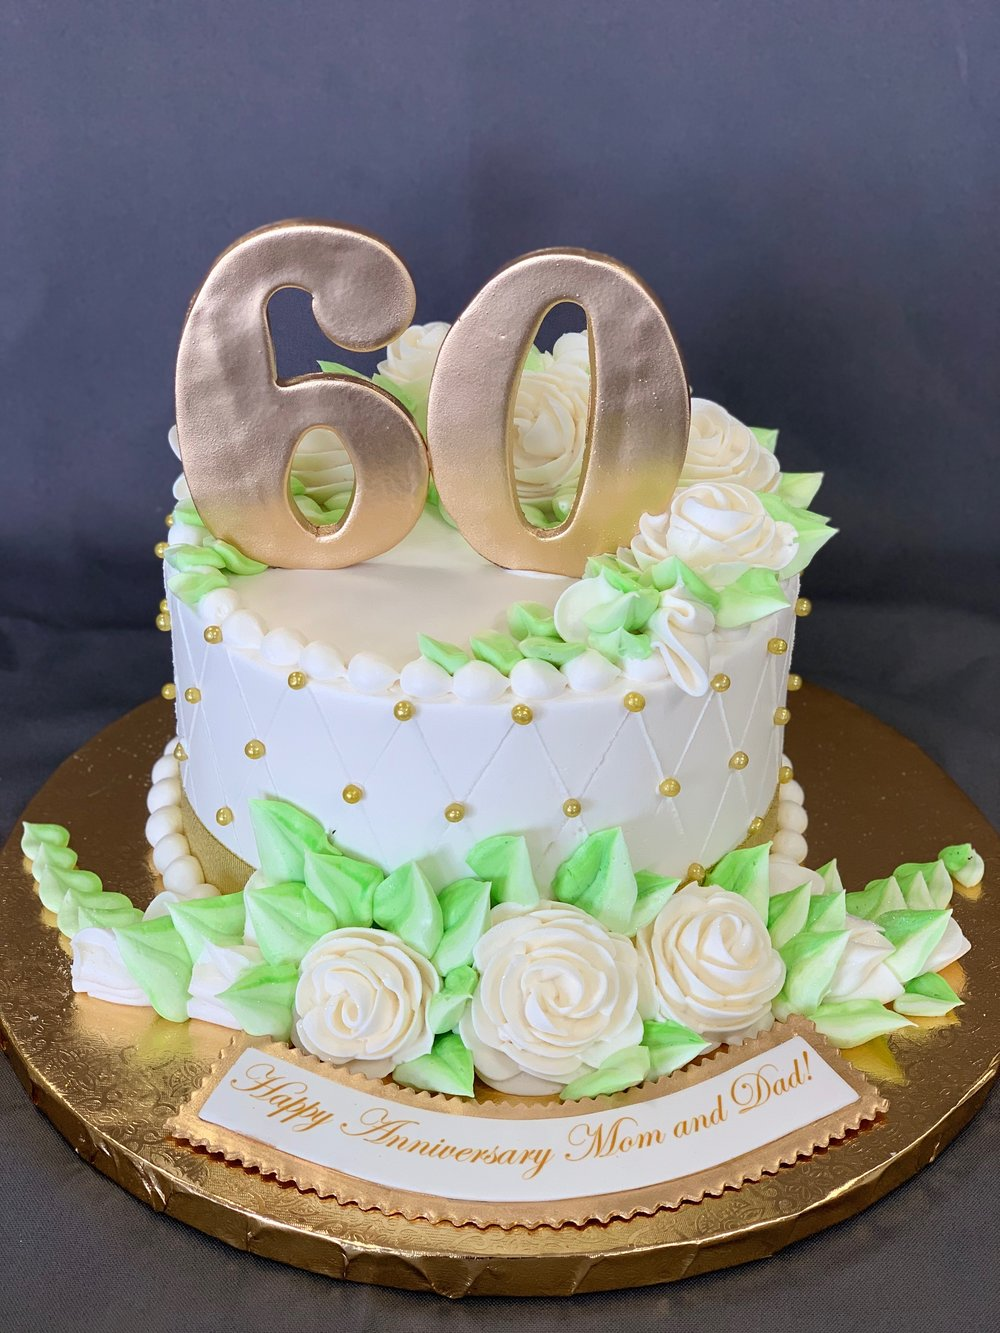 60th Birthday Cake New Jersey